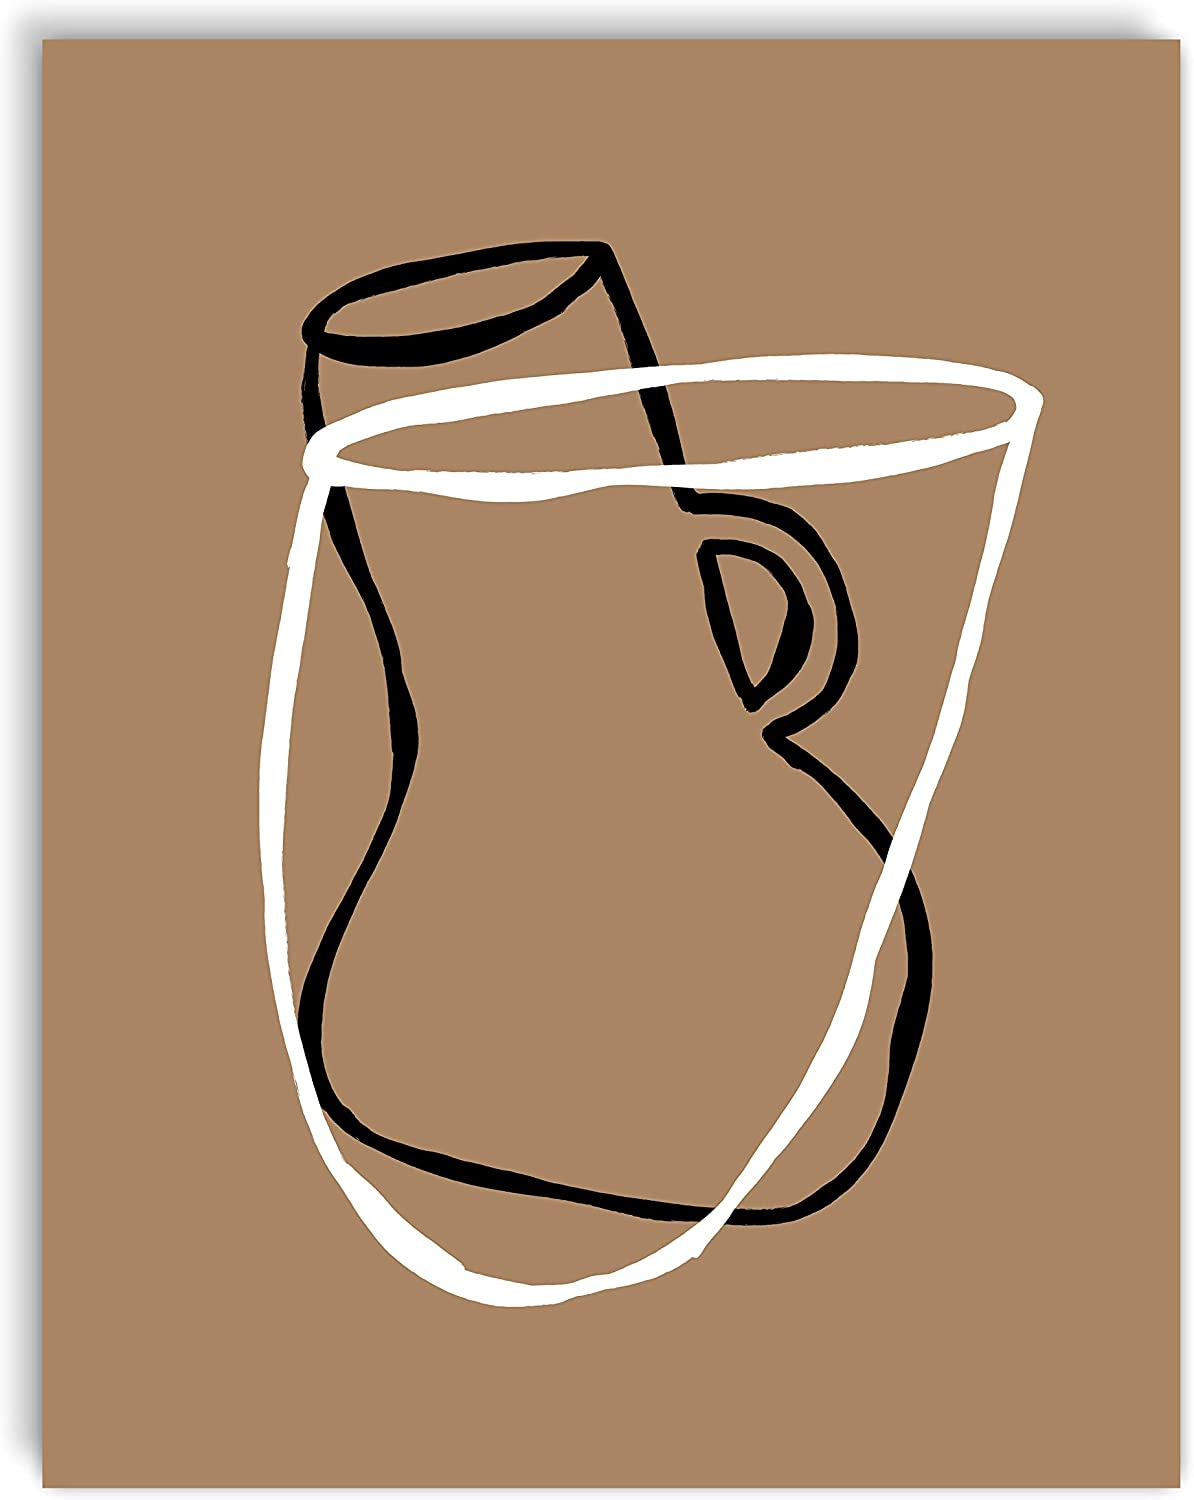 Printsmo, Bowl and Vase, Minimalist Modern Abstract Art Print Poster, Contemporary Wall Art for Home Decor 11x14 inches, Unframed (Bronze)